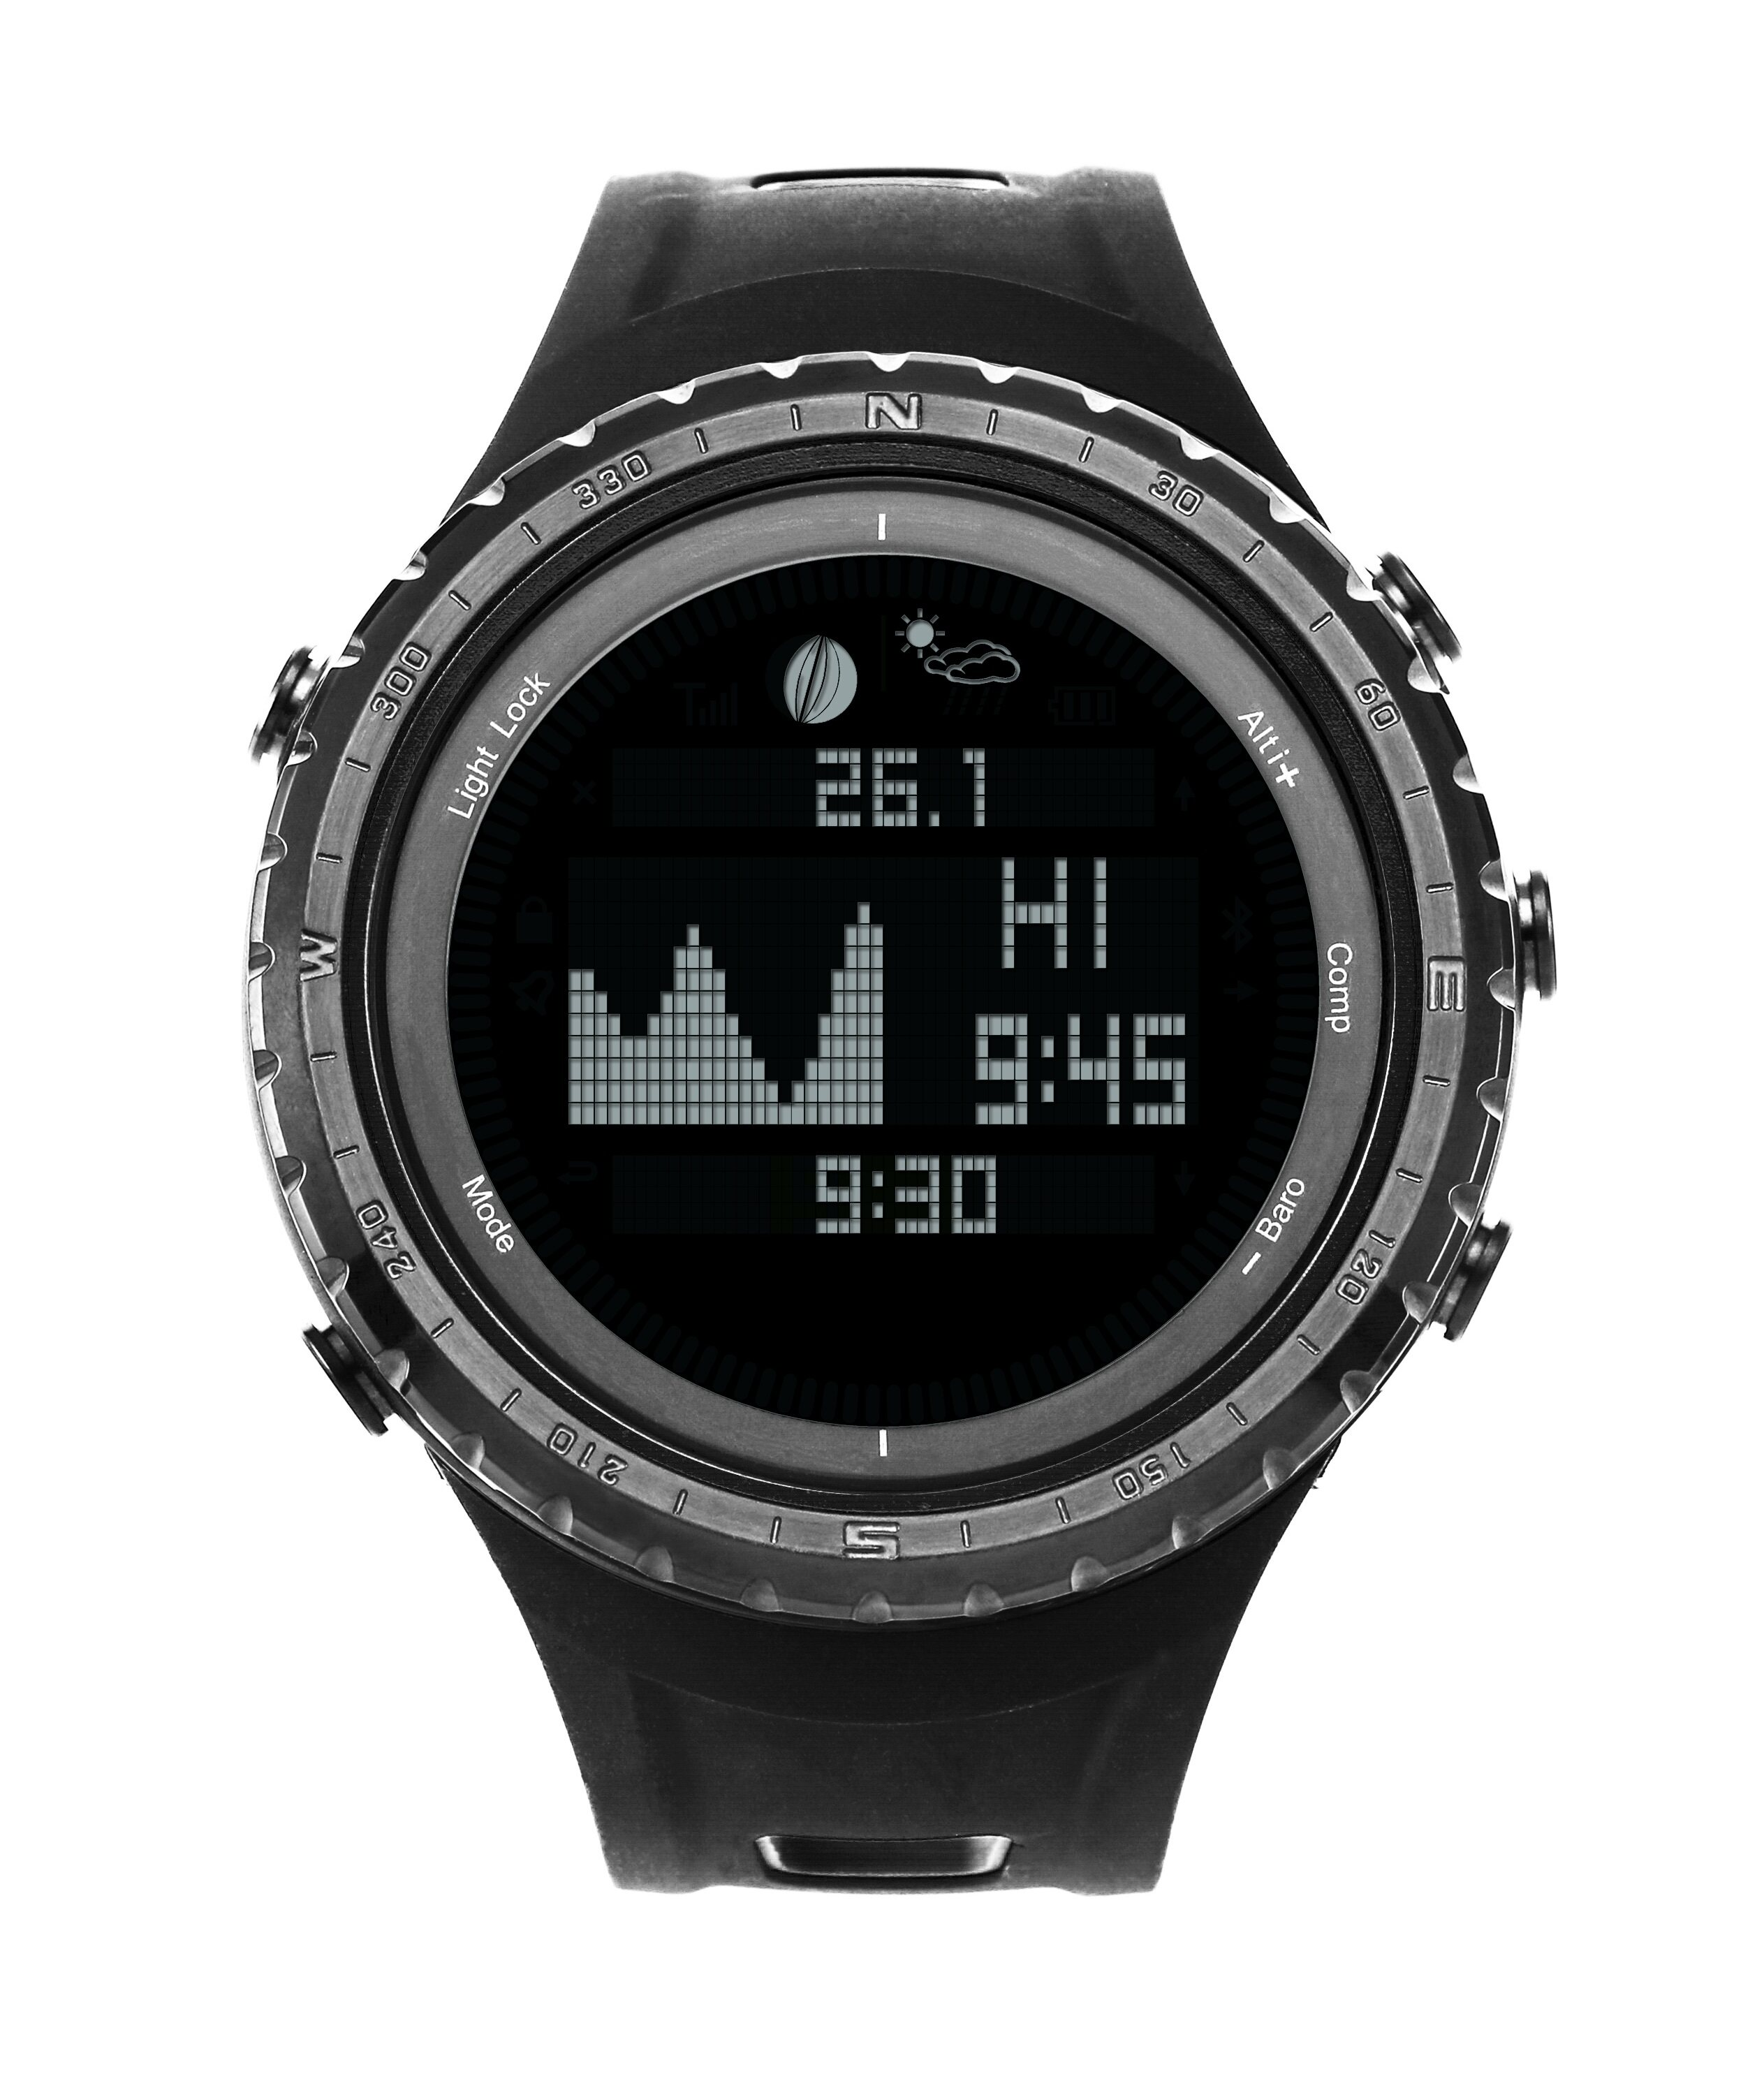 Tide watch for fishing surfing moon phase altimeter barometer thermometer waterproof backlight digital wrist watch 0